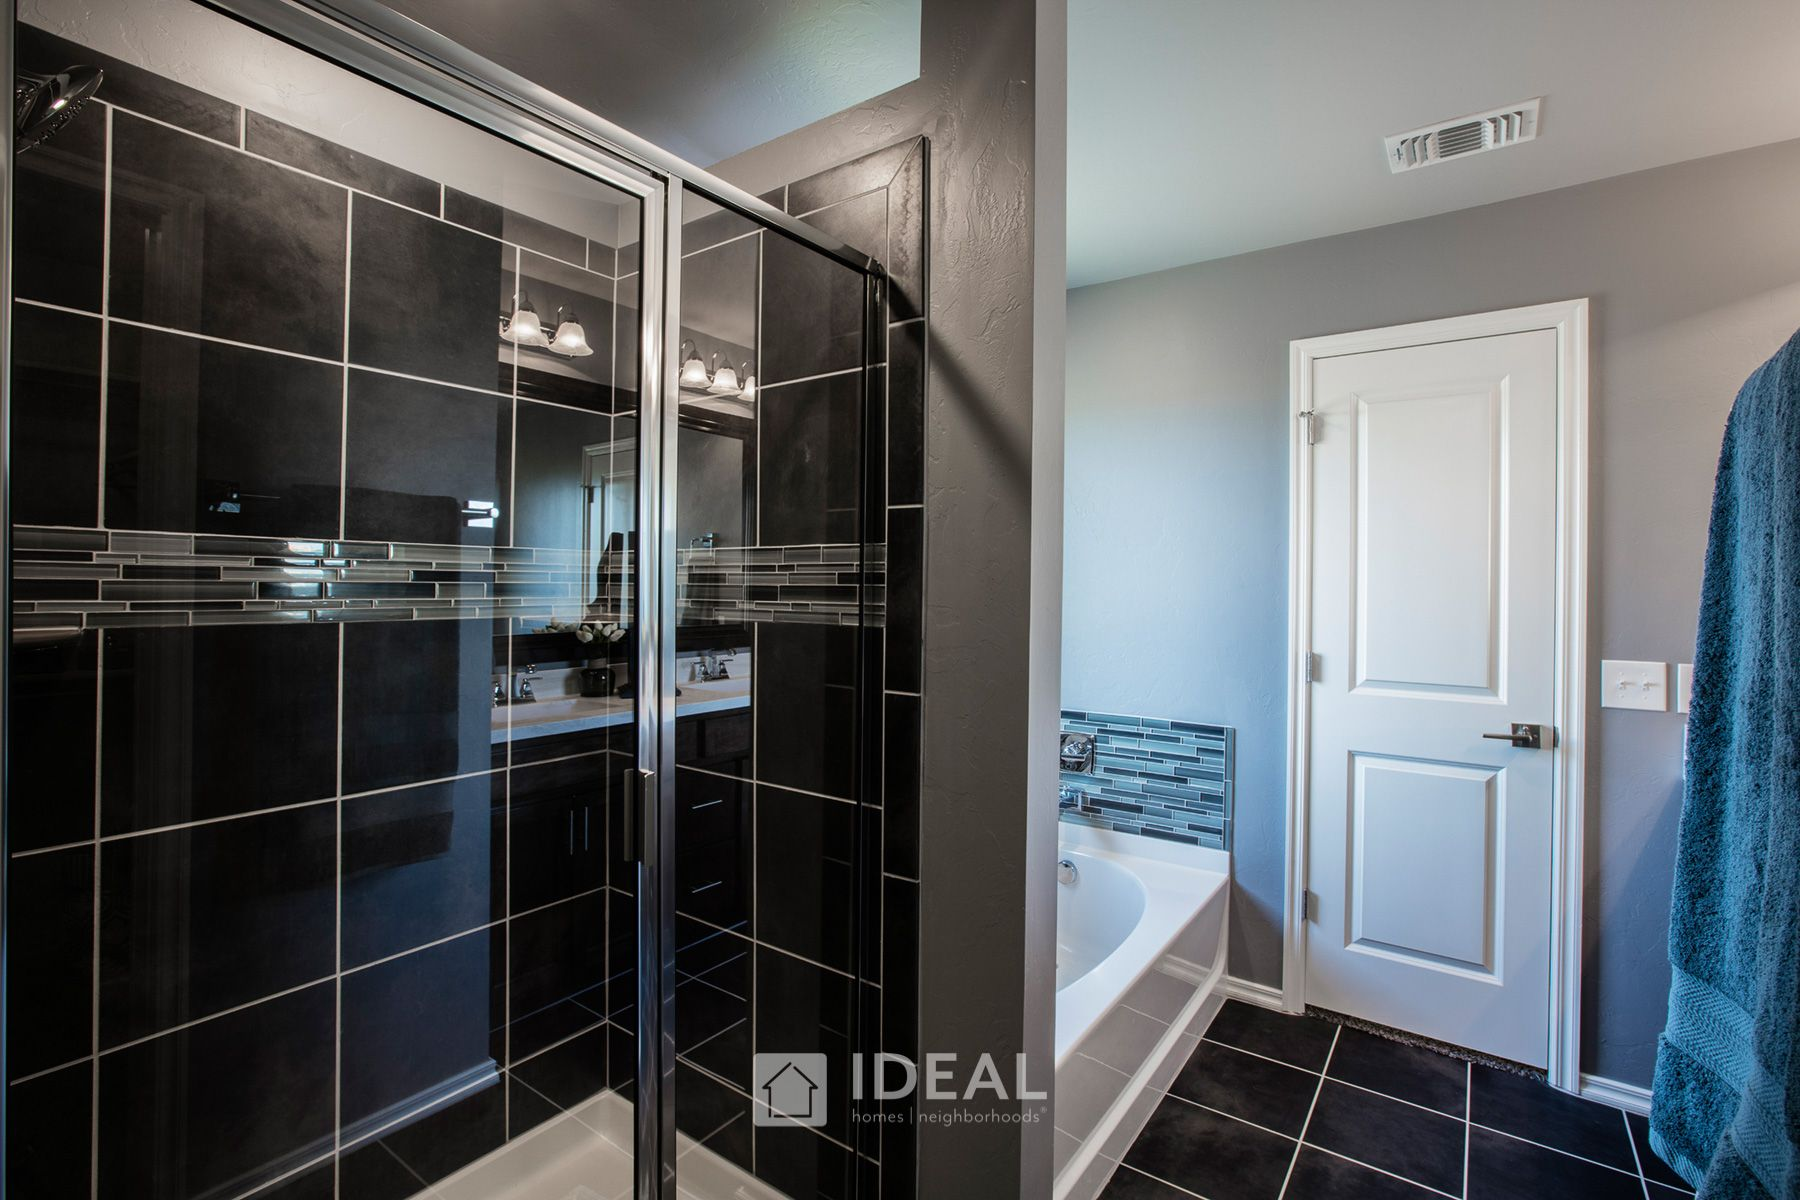 Bathroom featured in the Jefferson By Ideal Homes in Oklahoma City, OK